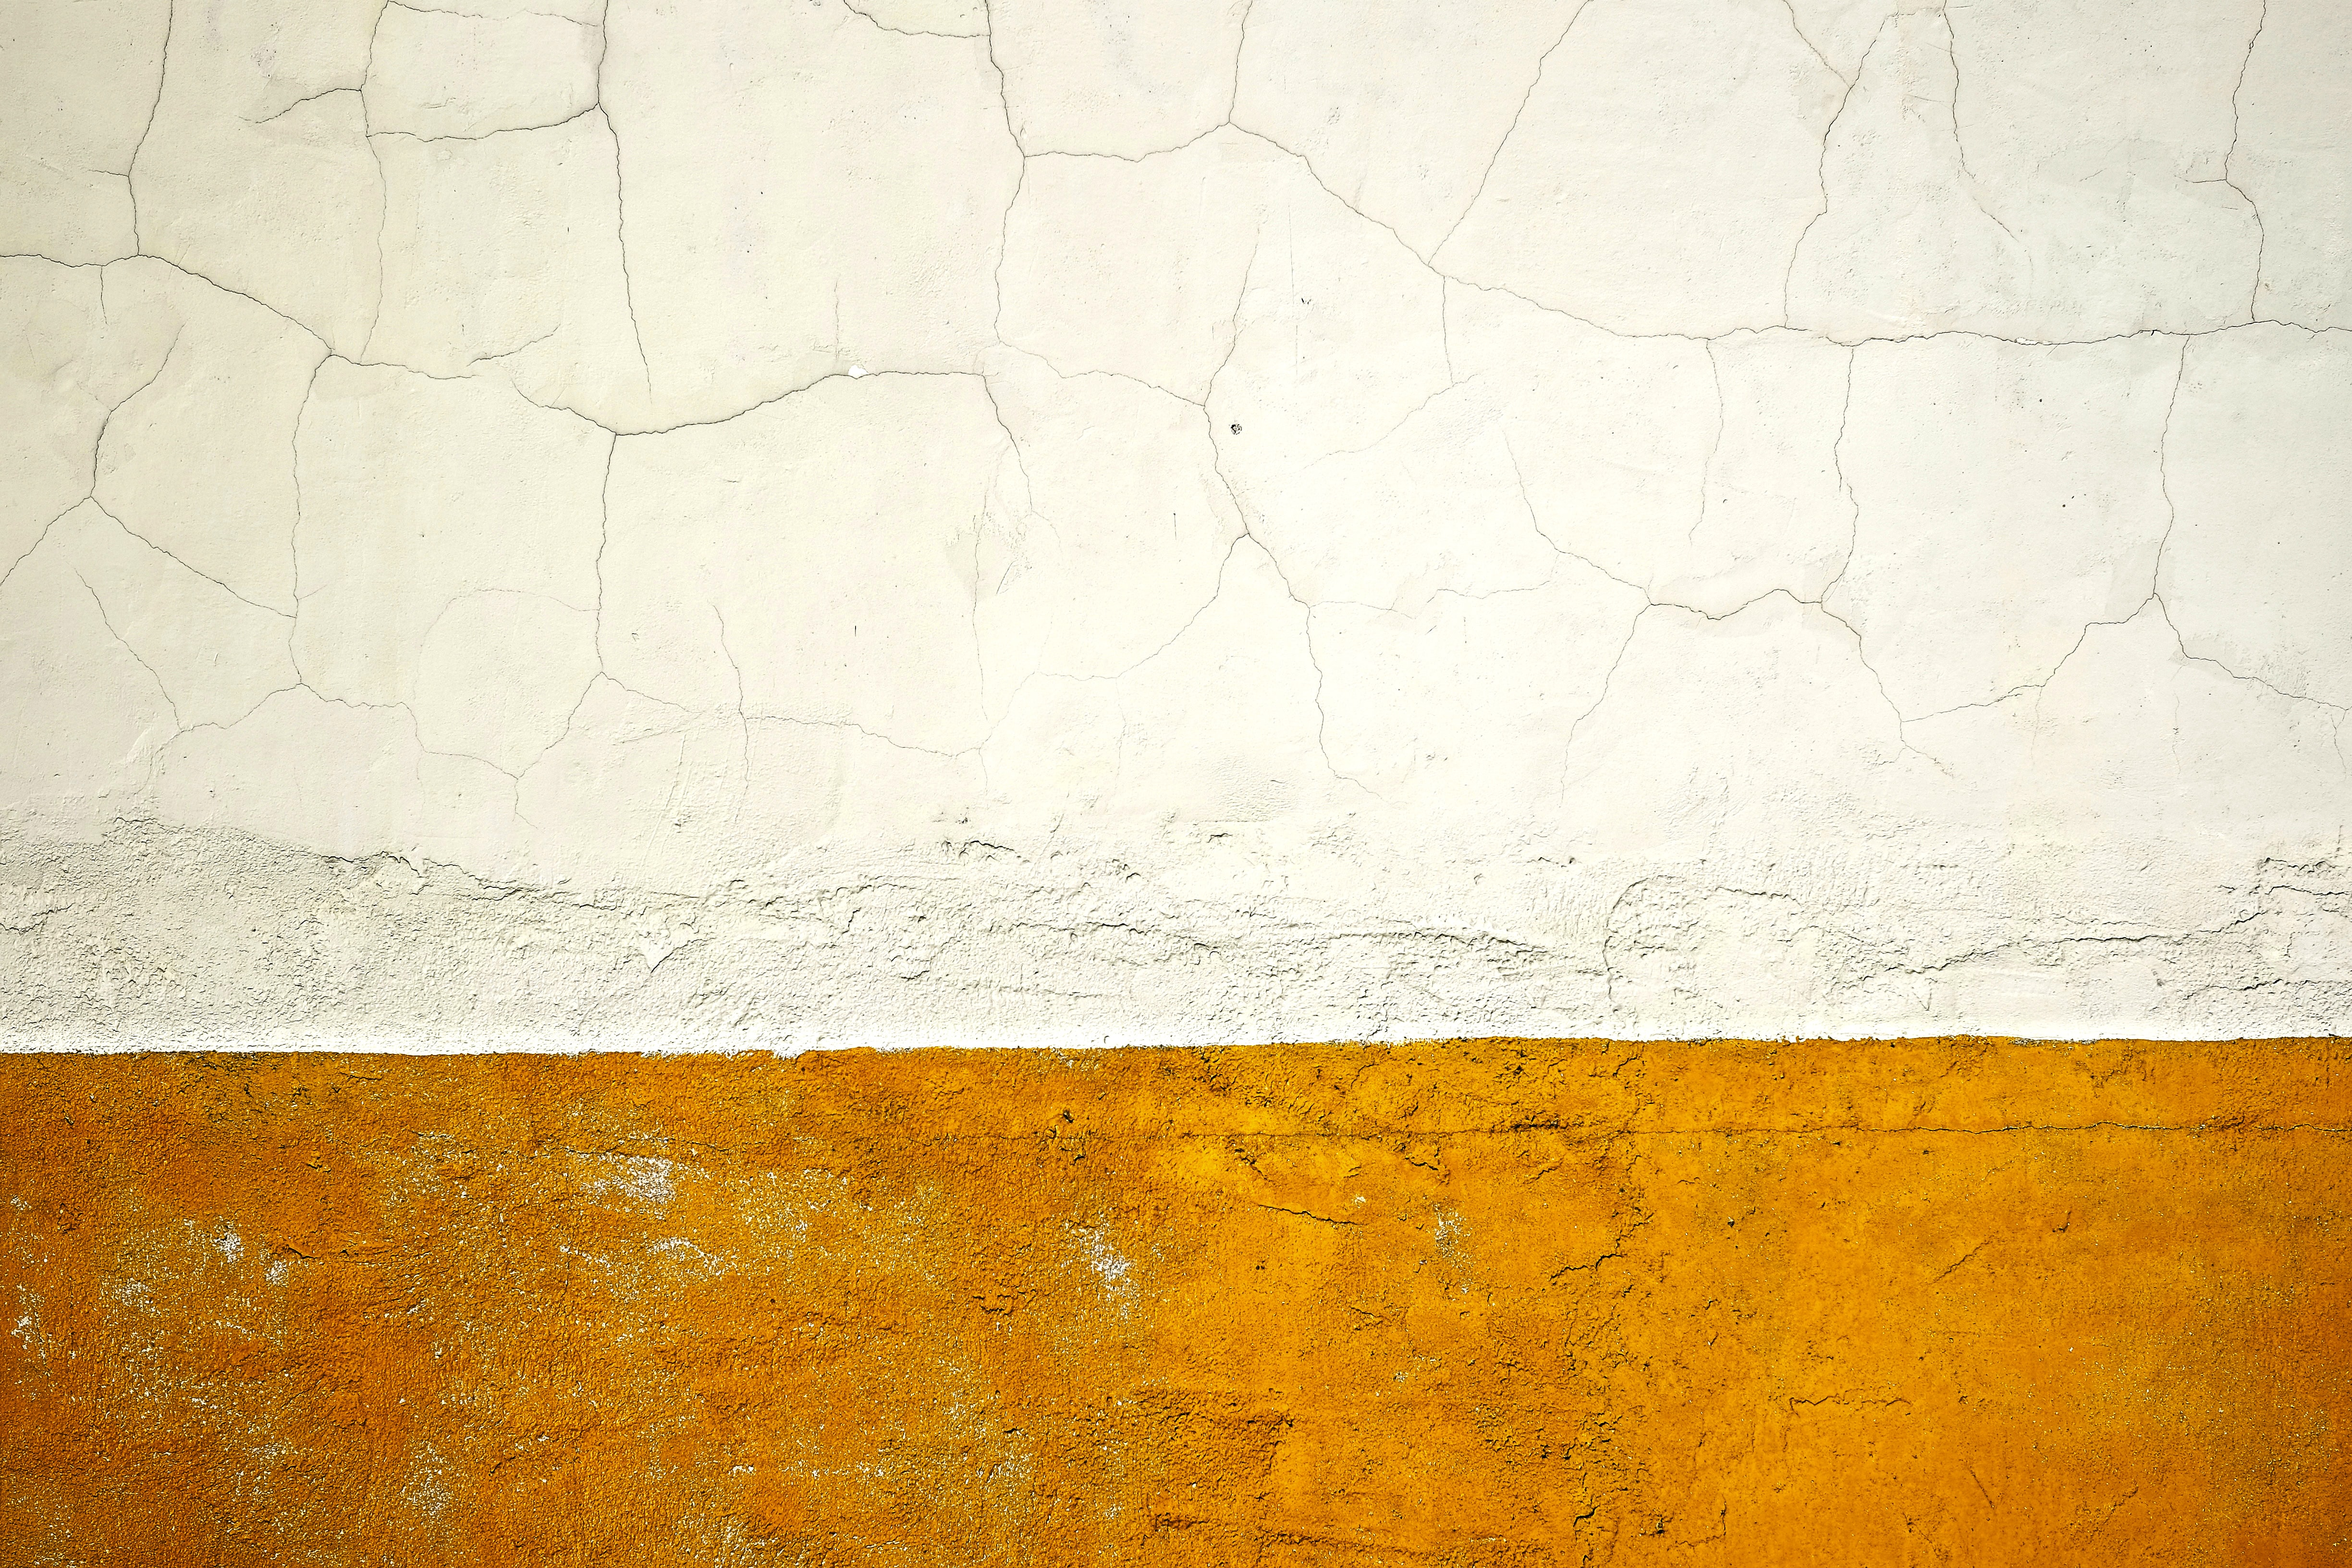 A cracked wall texture background pattern, taken in Grotle